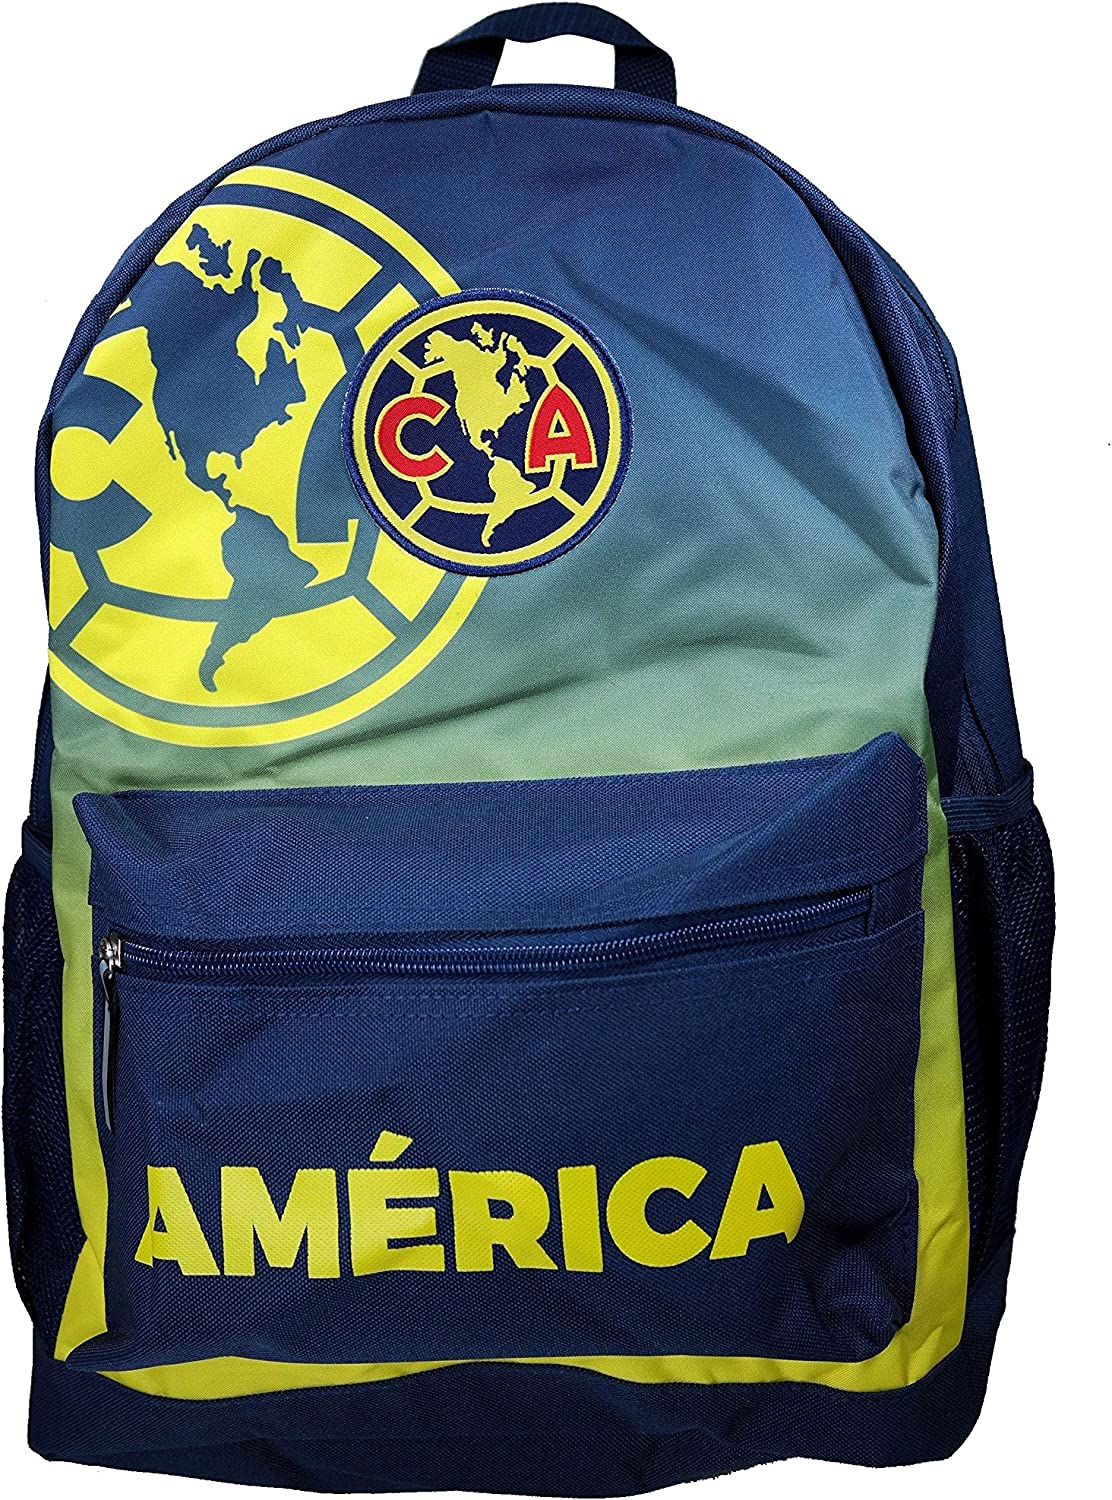 Club America Authentic Official Houston Mall Backpack Licensed Soccer Product Ranking TOP12